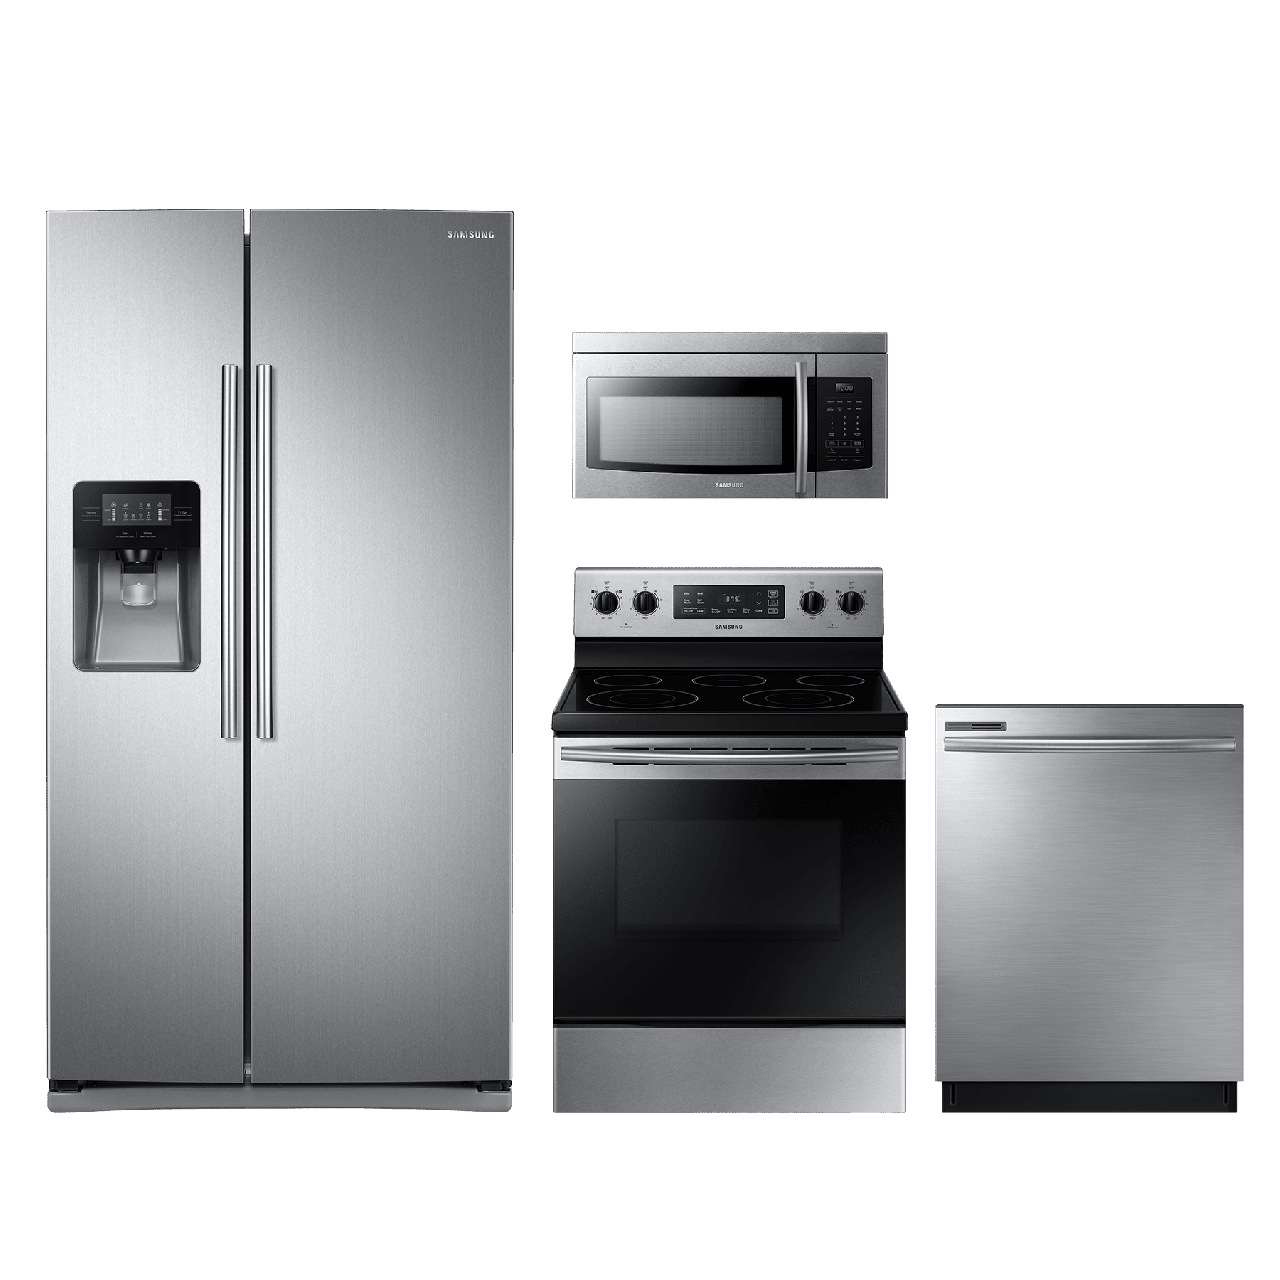 bundle package adxcomputer appliance steel home deals kitchen astonishing stainless from appliances interior